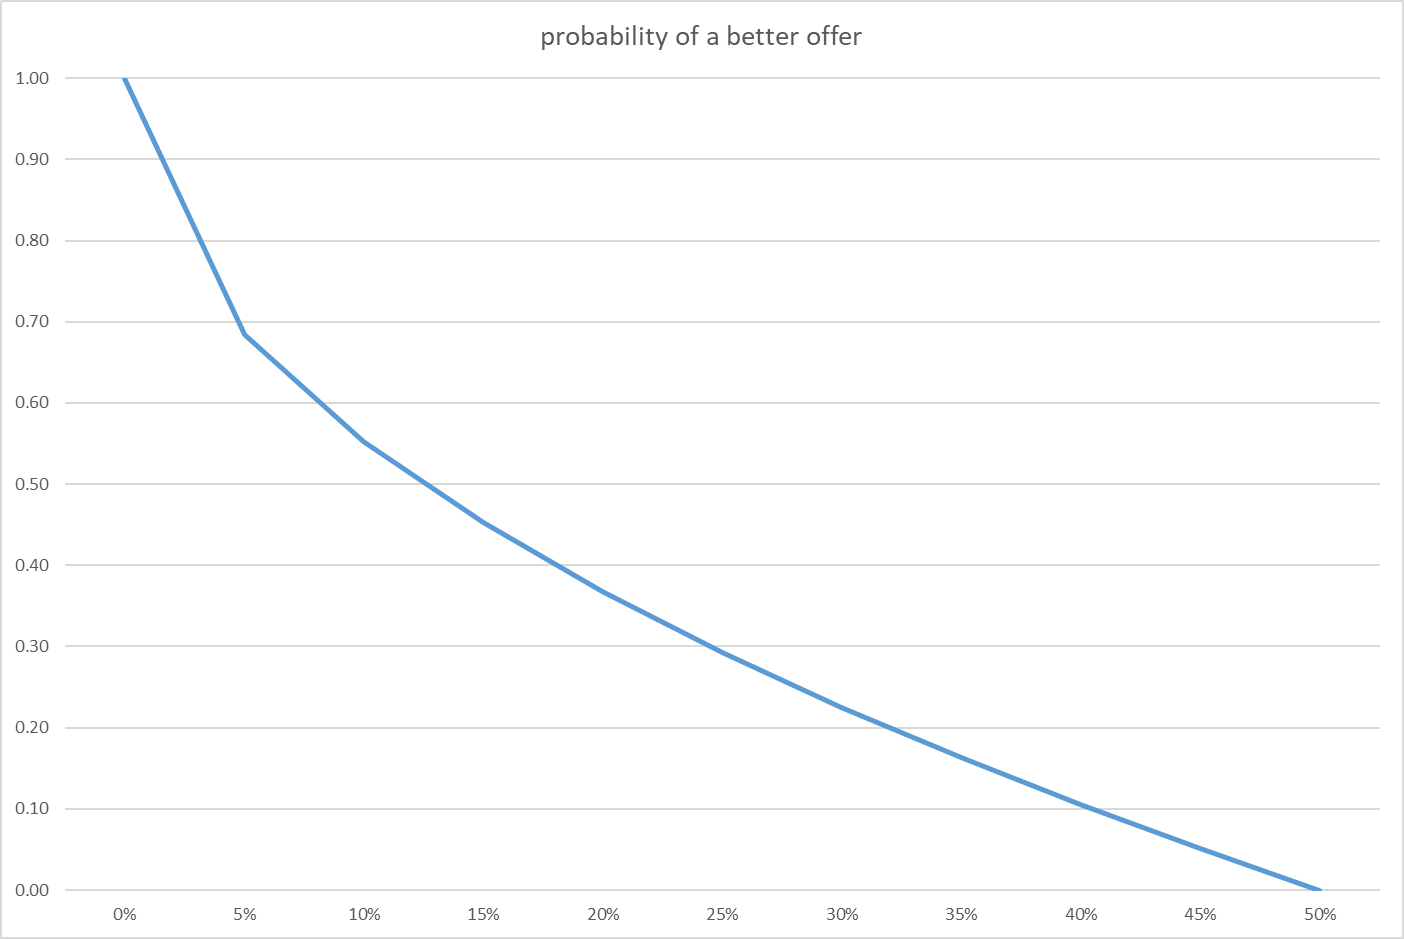 A graph showing probability of a better offer as a function of cost